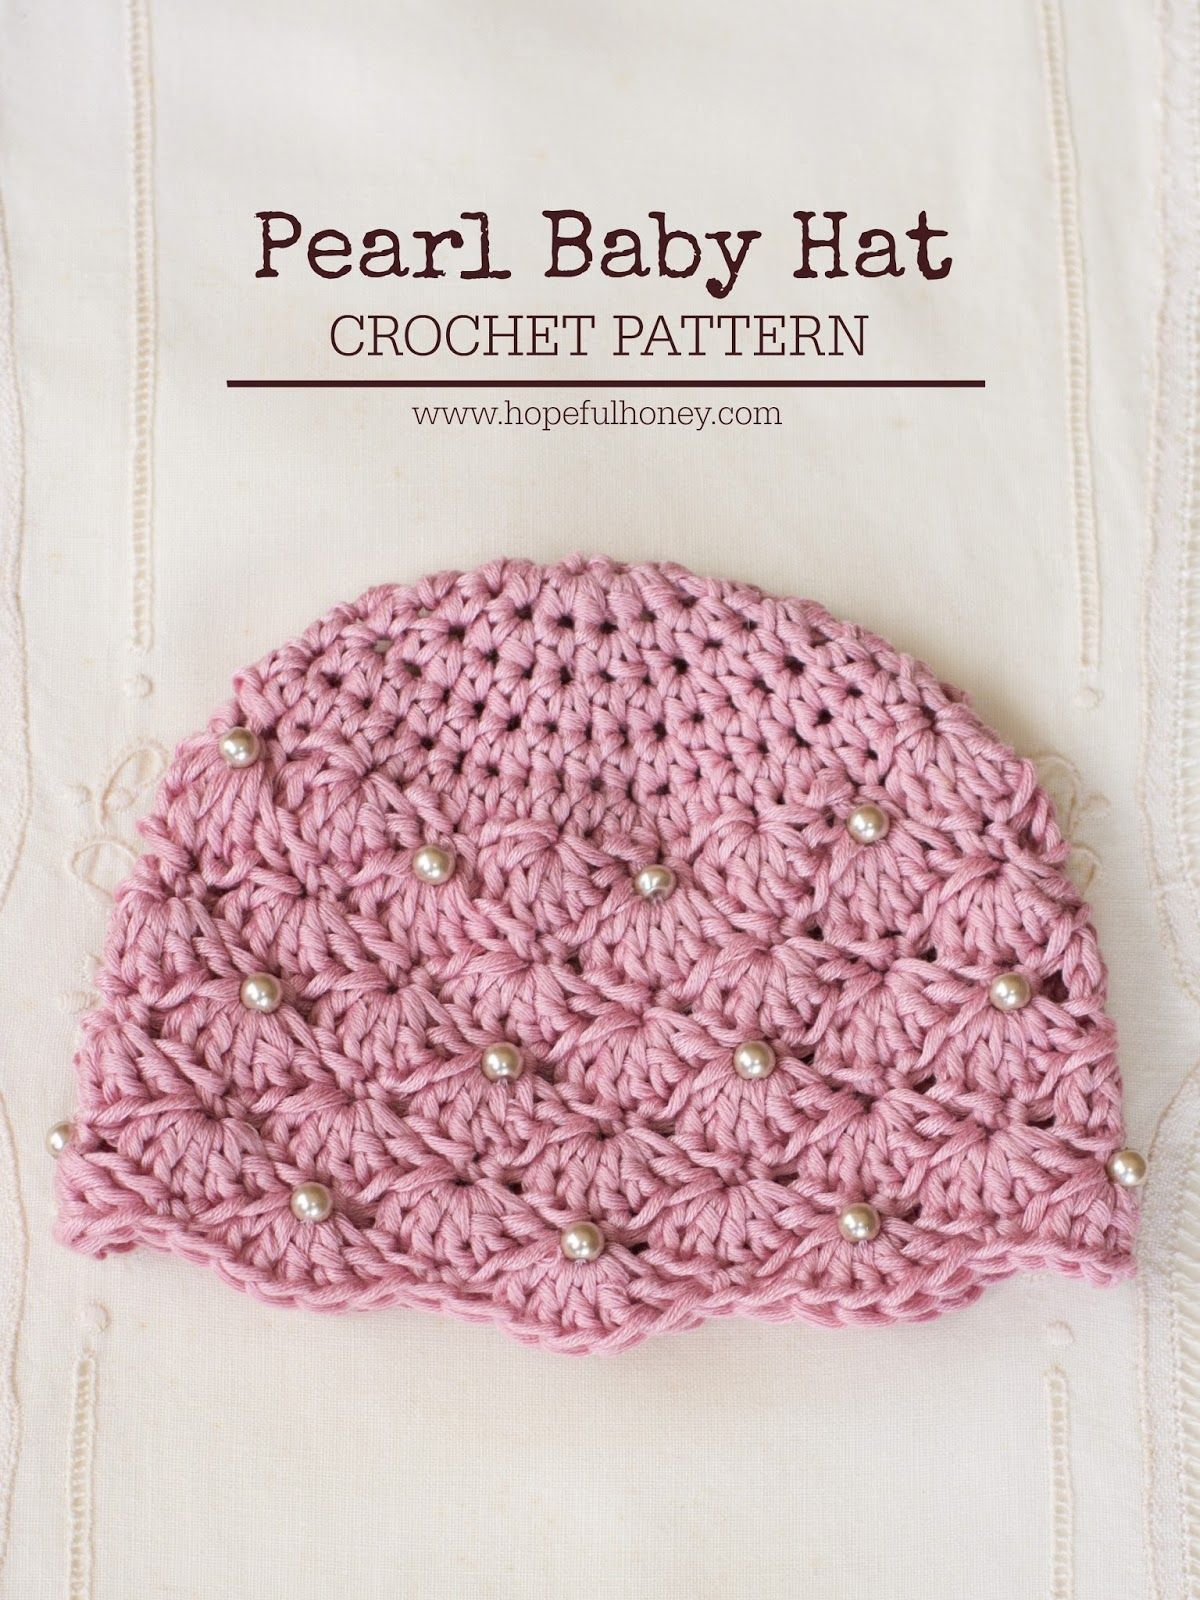 Vintage Pearl Baby Hat Crochet Pattern | Baby hats, Free crochet and ...